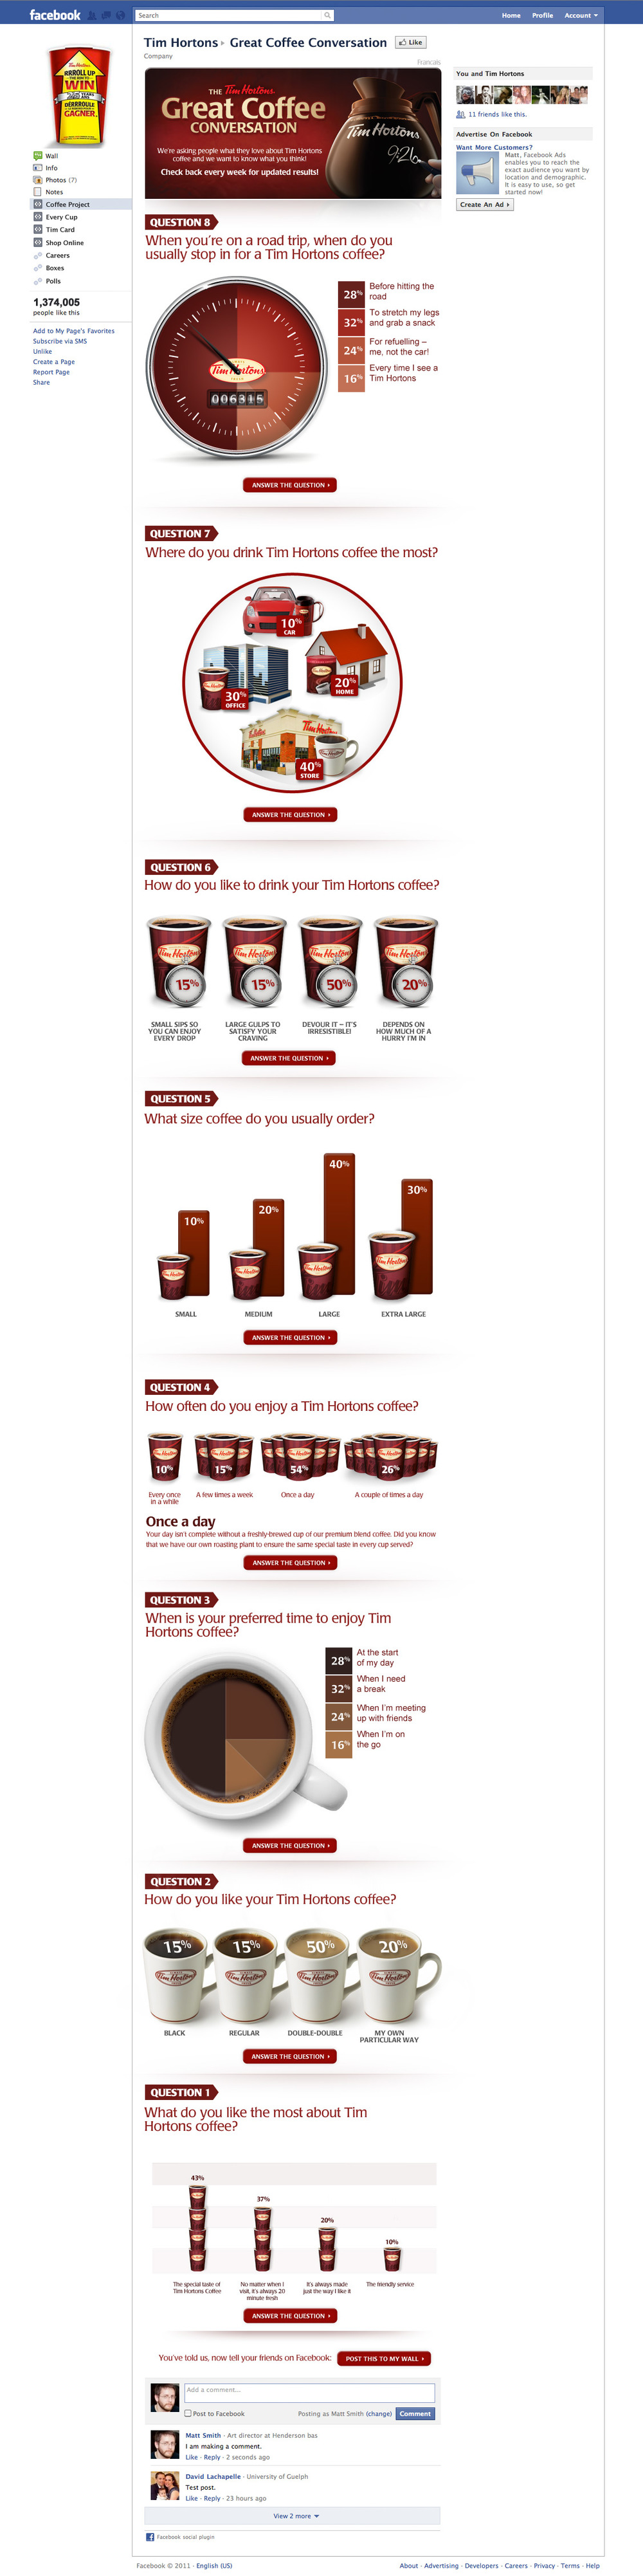 ---   Client: Tim Hortons Project: The Great Coffee Conversation Facebook Infographic   Agency: Henderson Bas   Role: Creative Direction, Art Direction, Partial Design